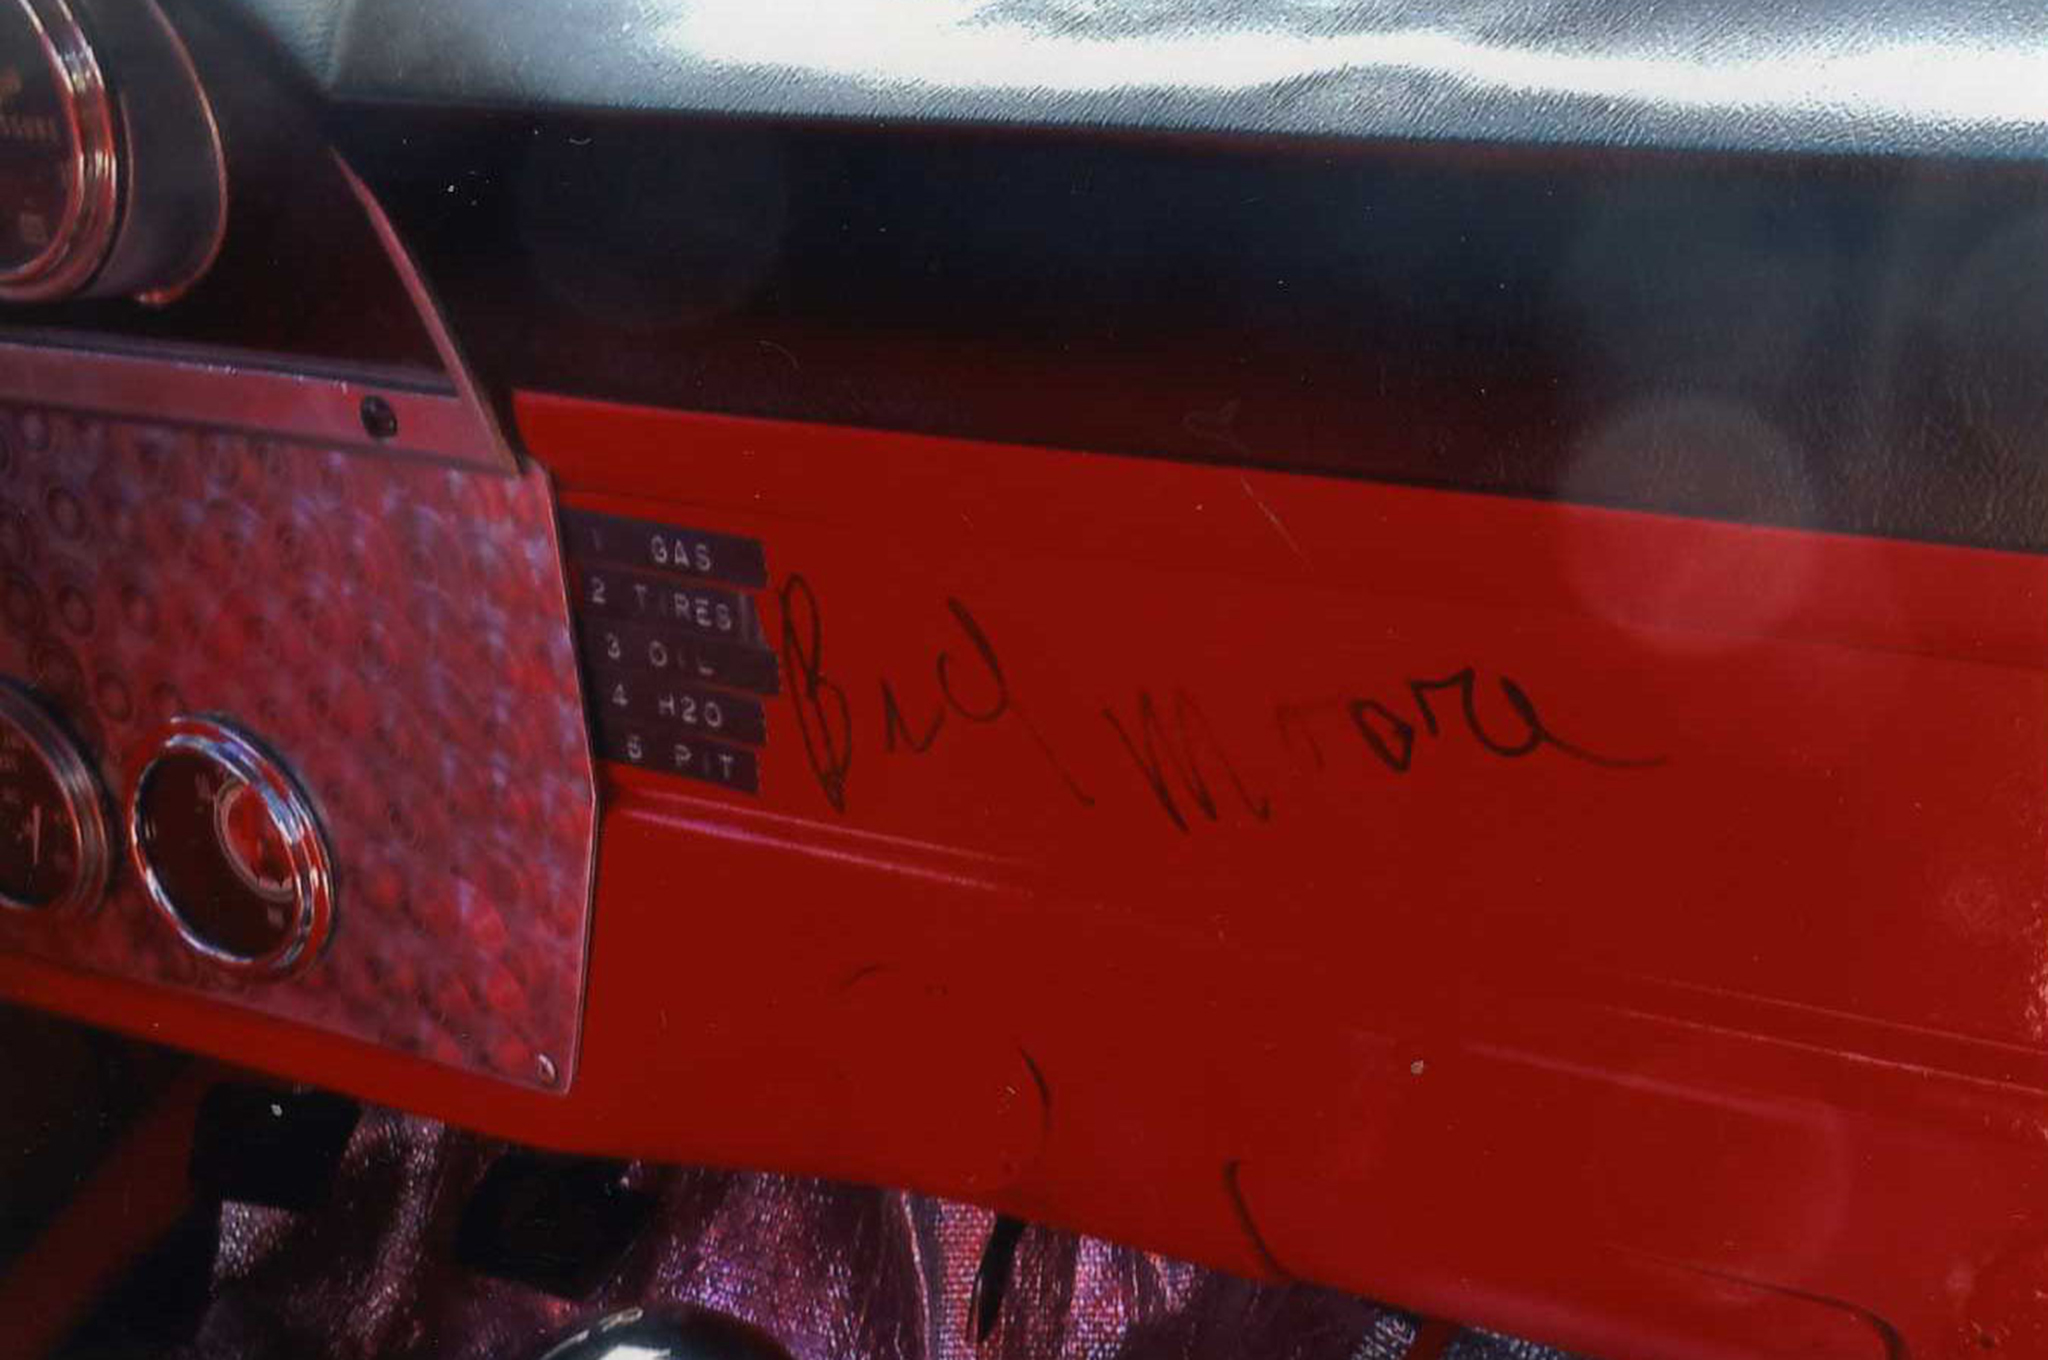 It seems very appropriate to have a Bud Moore autograph on the dash.